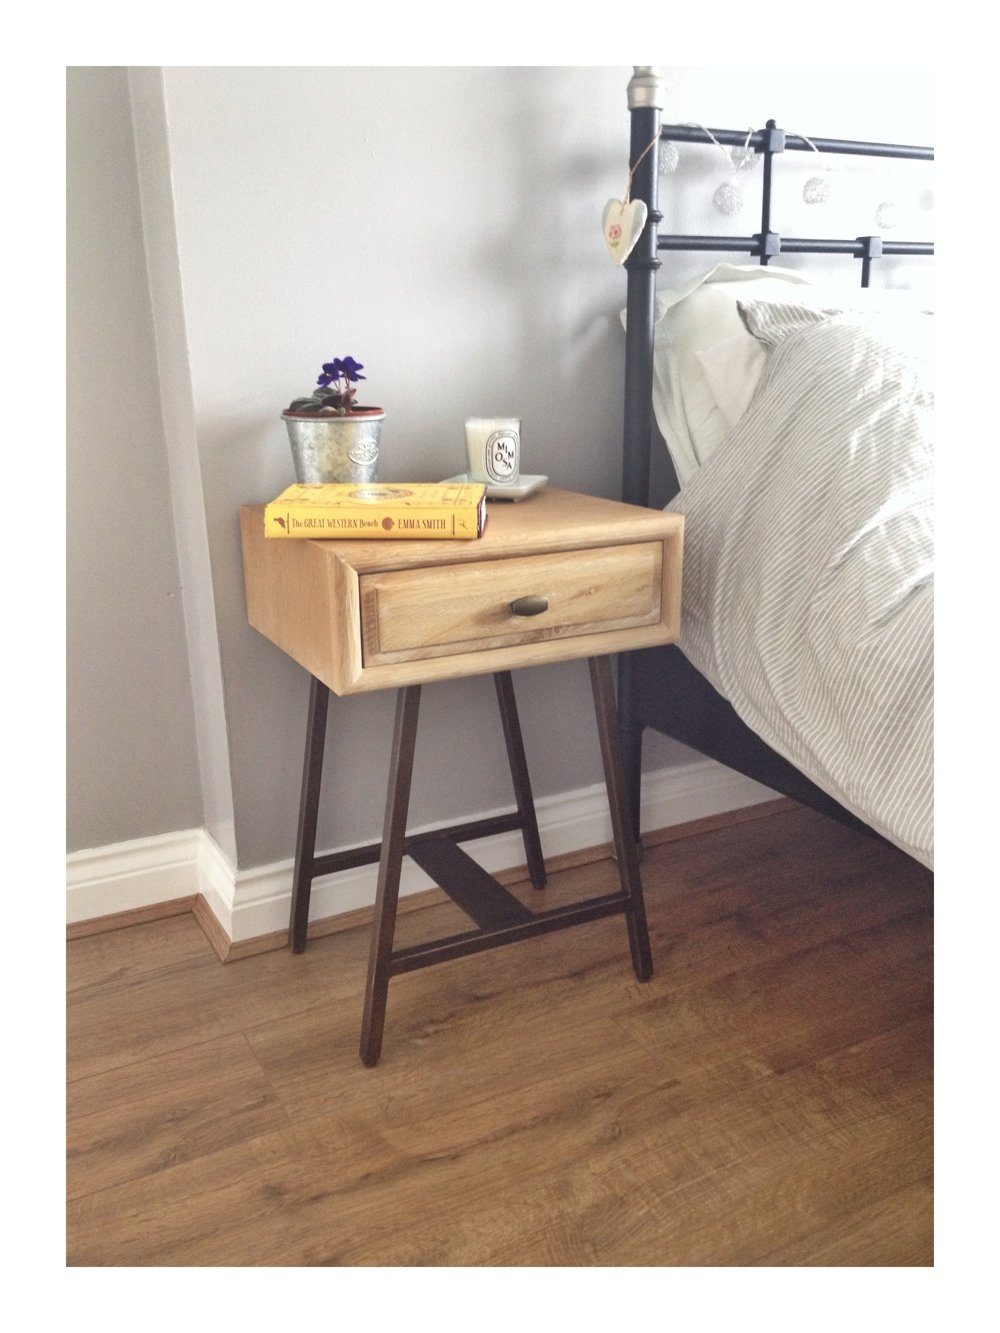 Bedroom makeover update the bedside table daisies pie for Bedroom table chairs